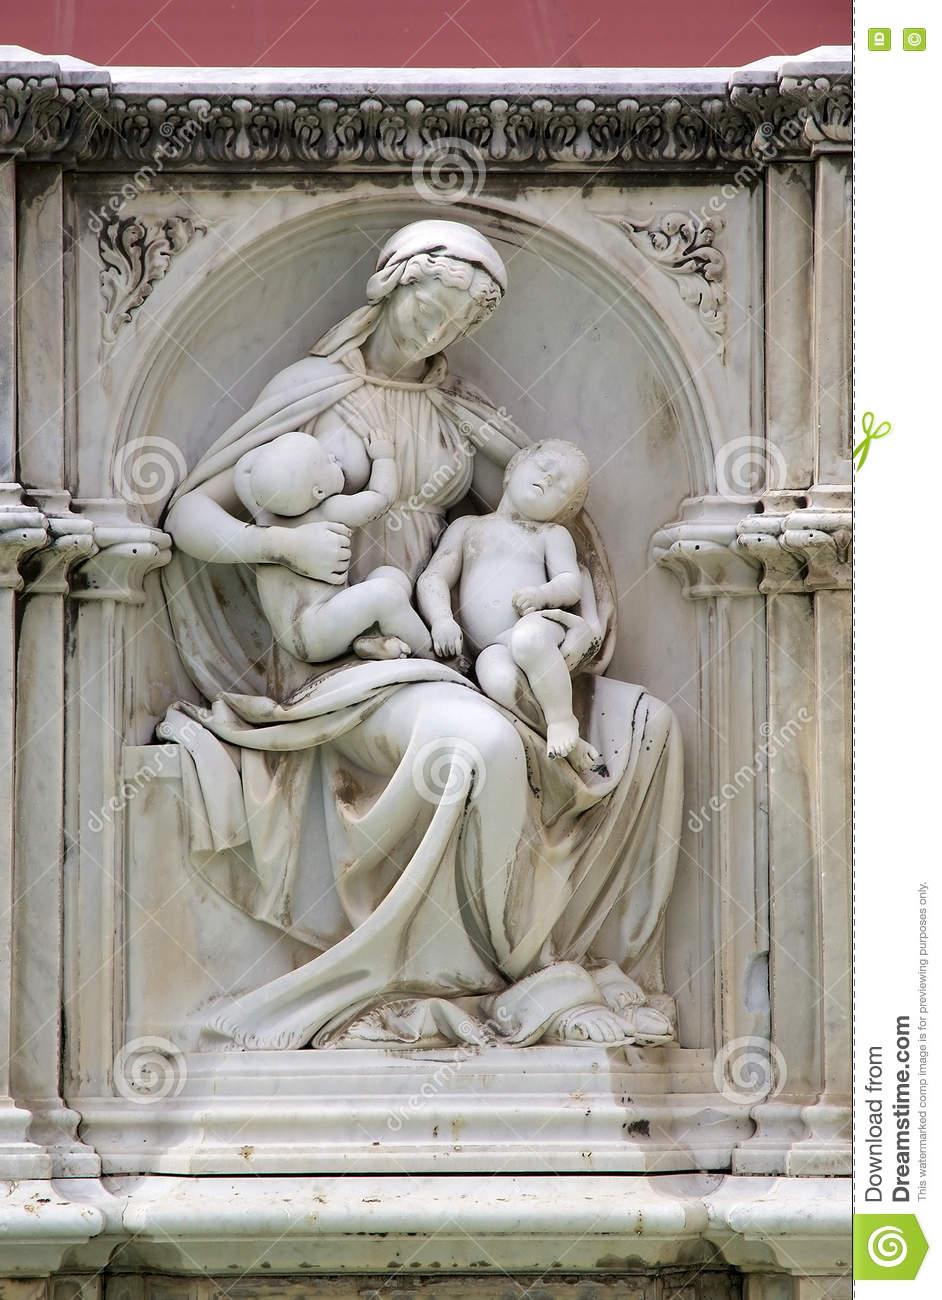 Ancient Gaia Statue sculpture from fonte gaia, siena, tuscany, italy stock photo